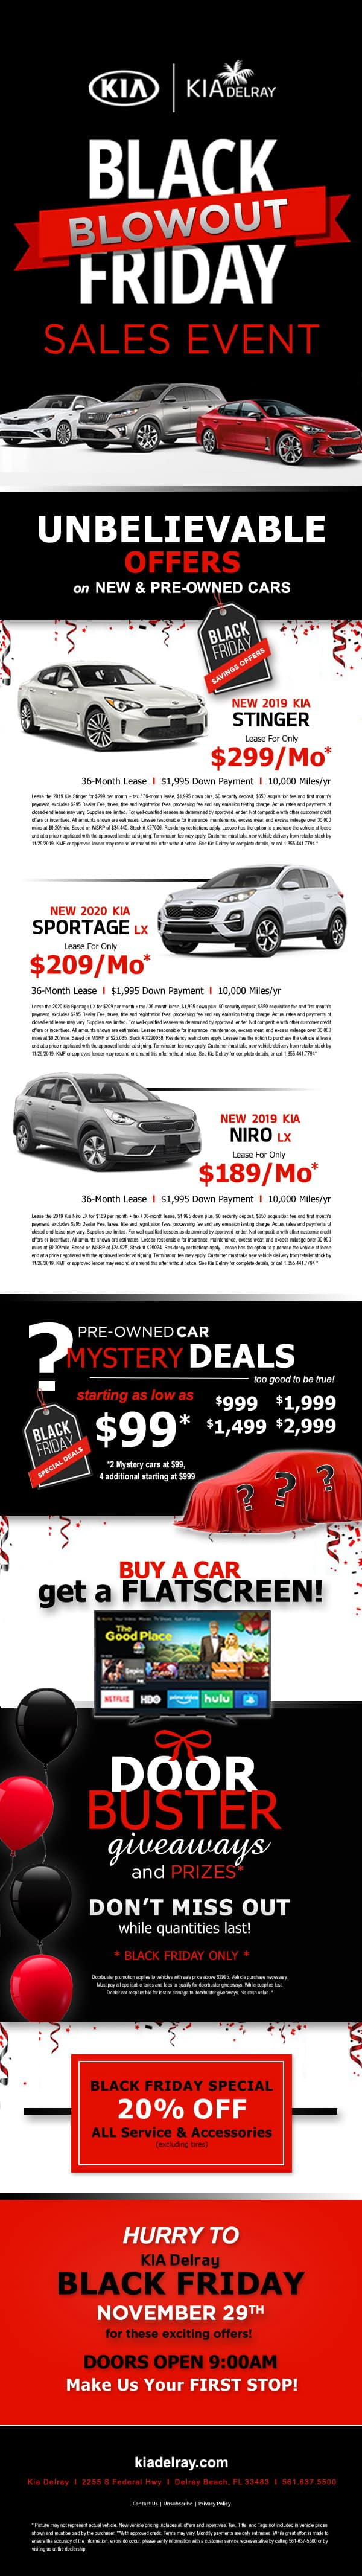 Kia Delray Black Friday Sales Event